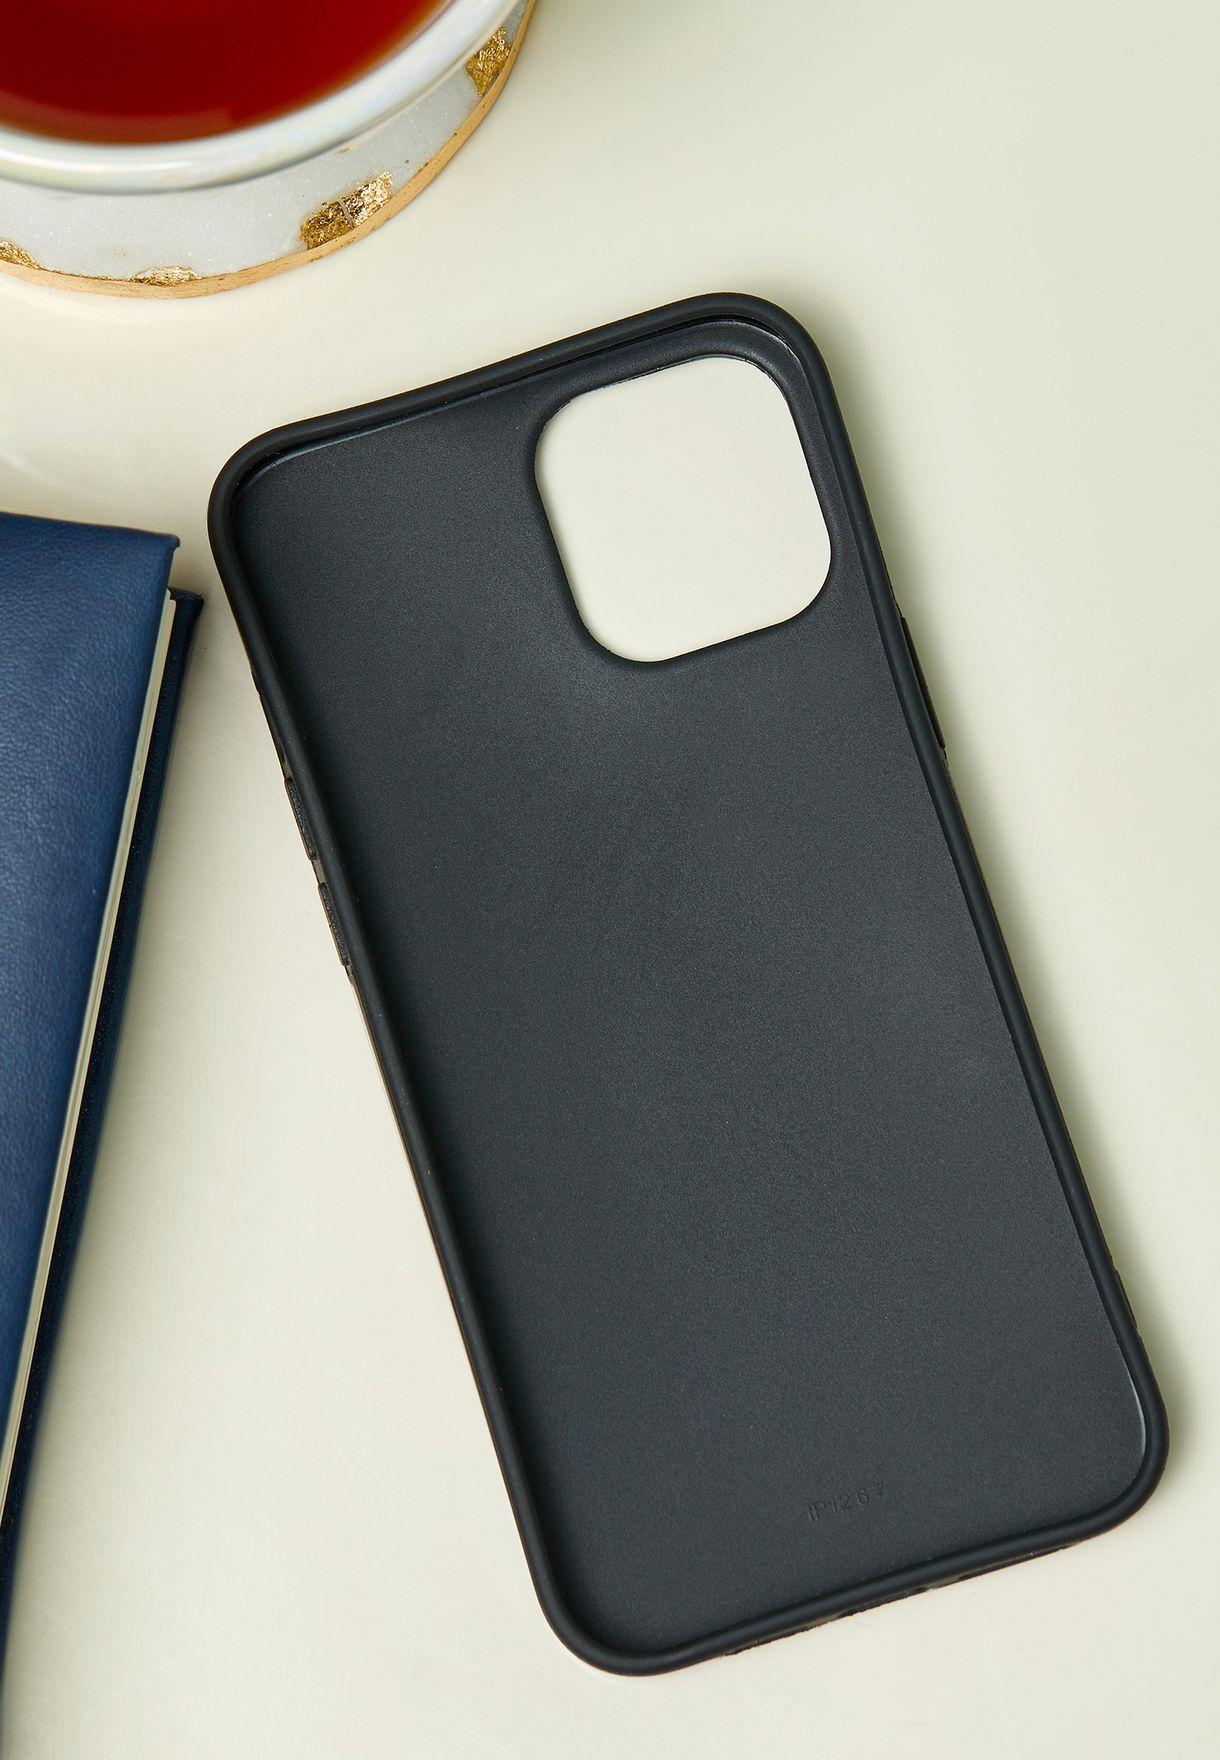 The Boss Iphone 12 Pro Max Case